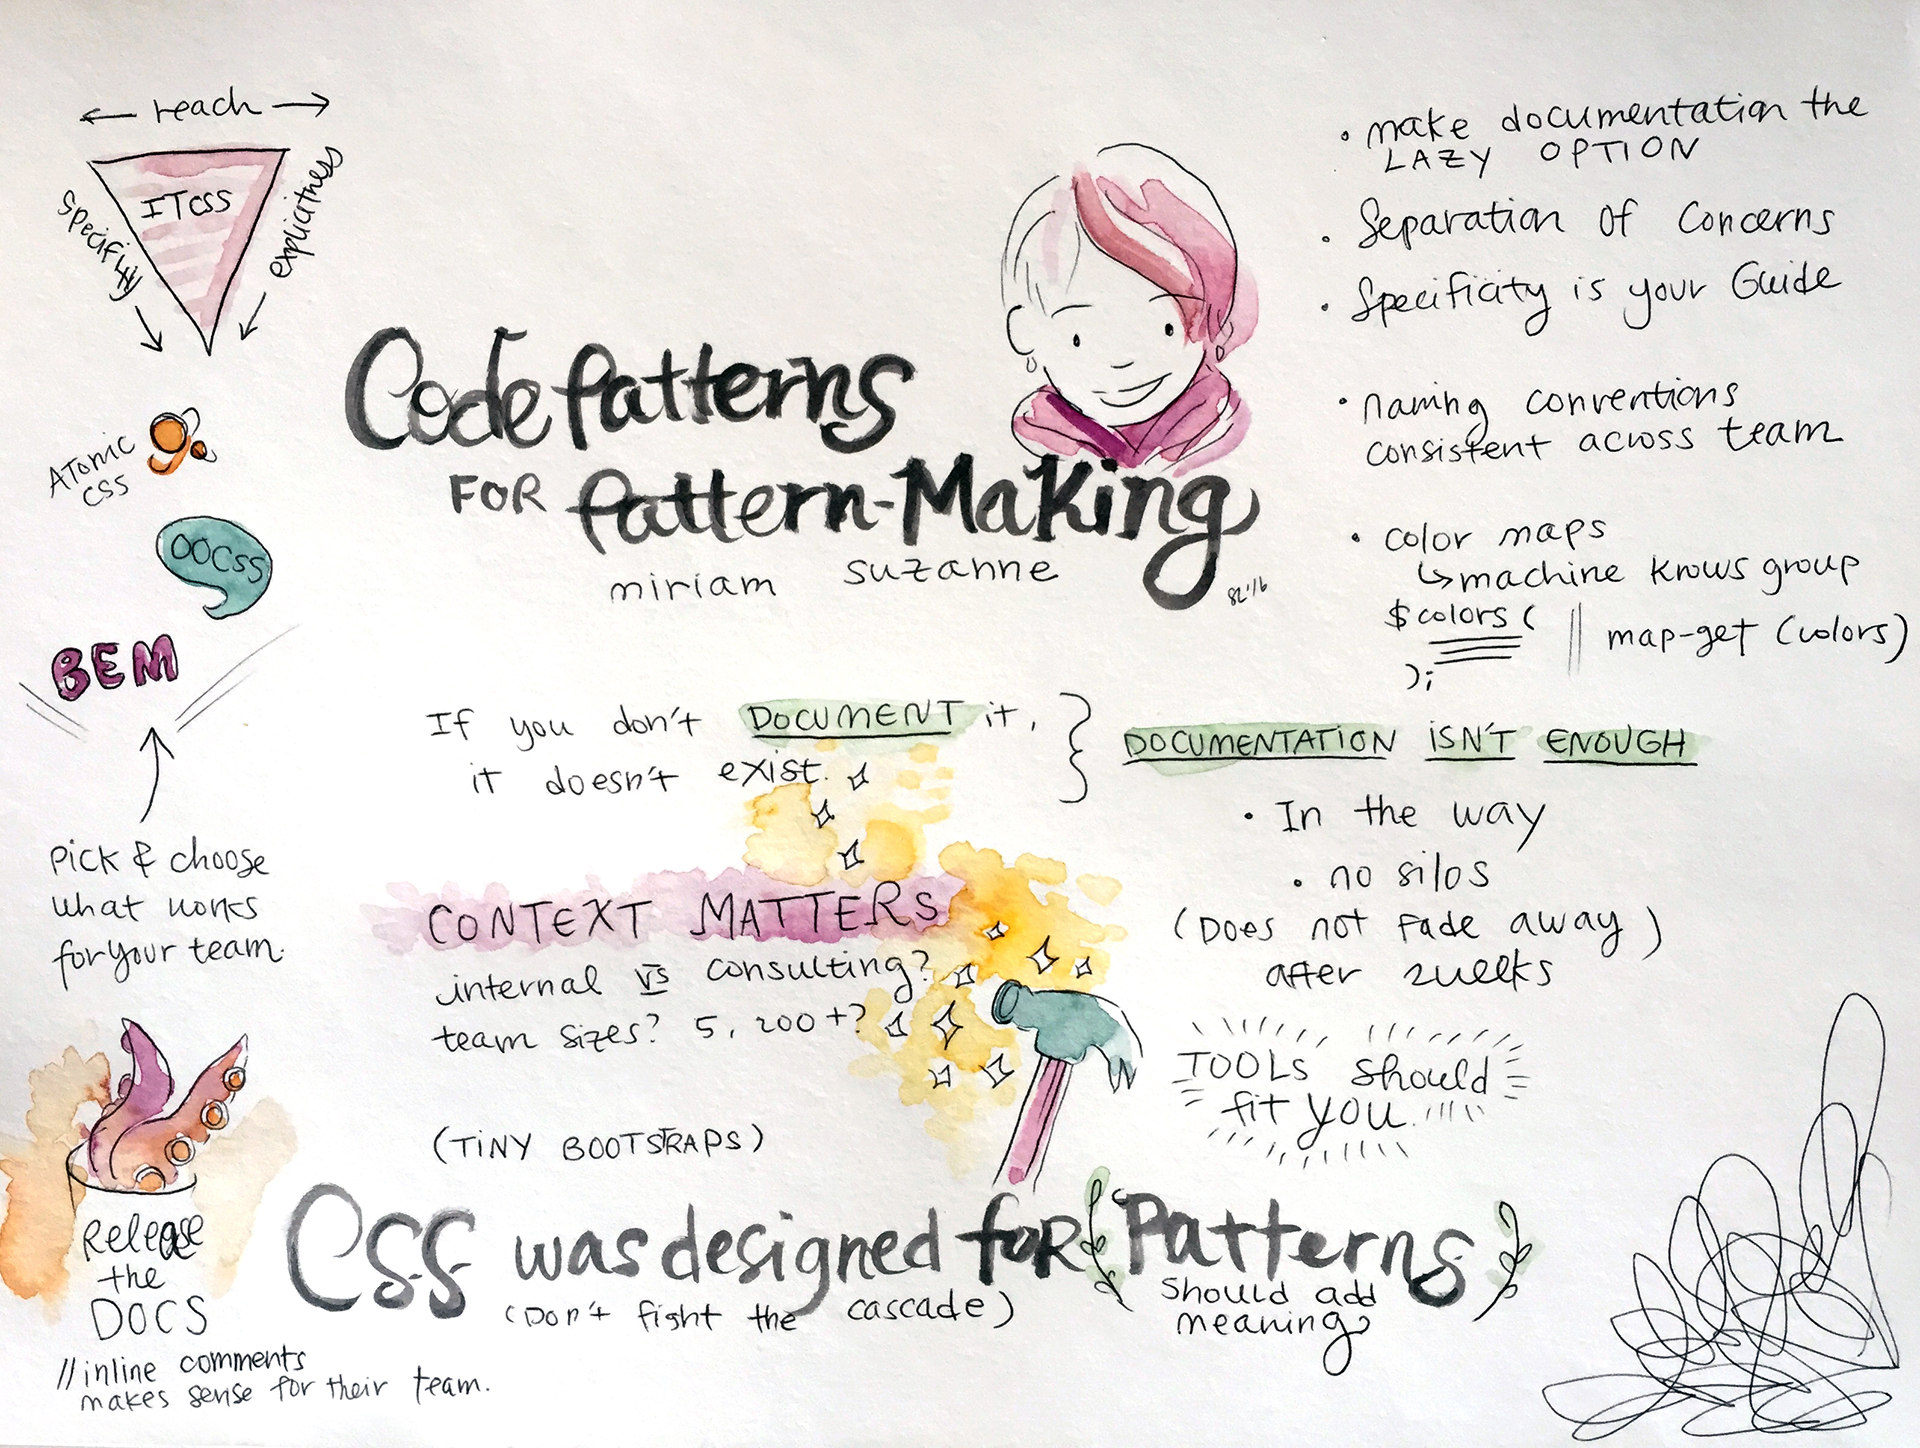 Code Patterns for Pattern-Making